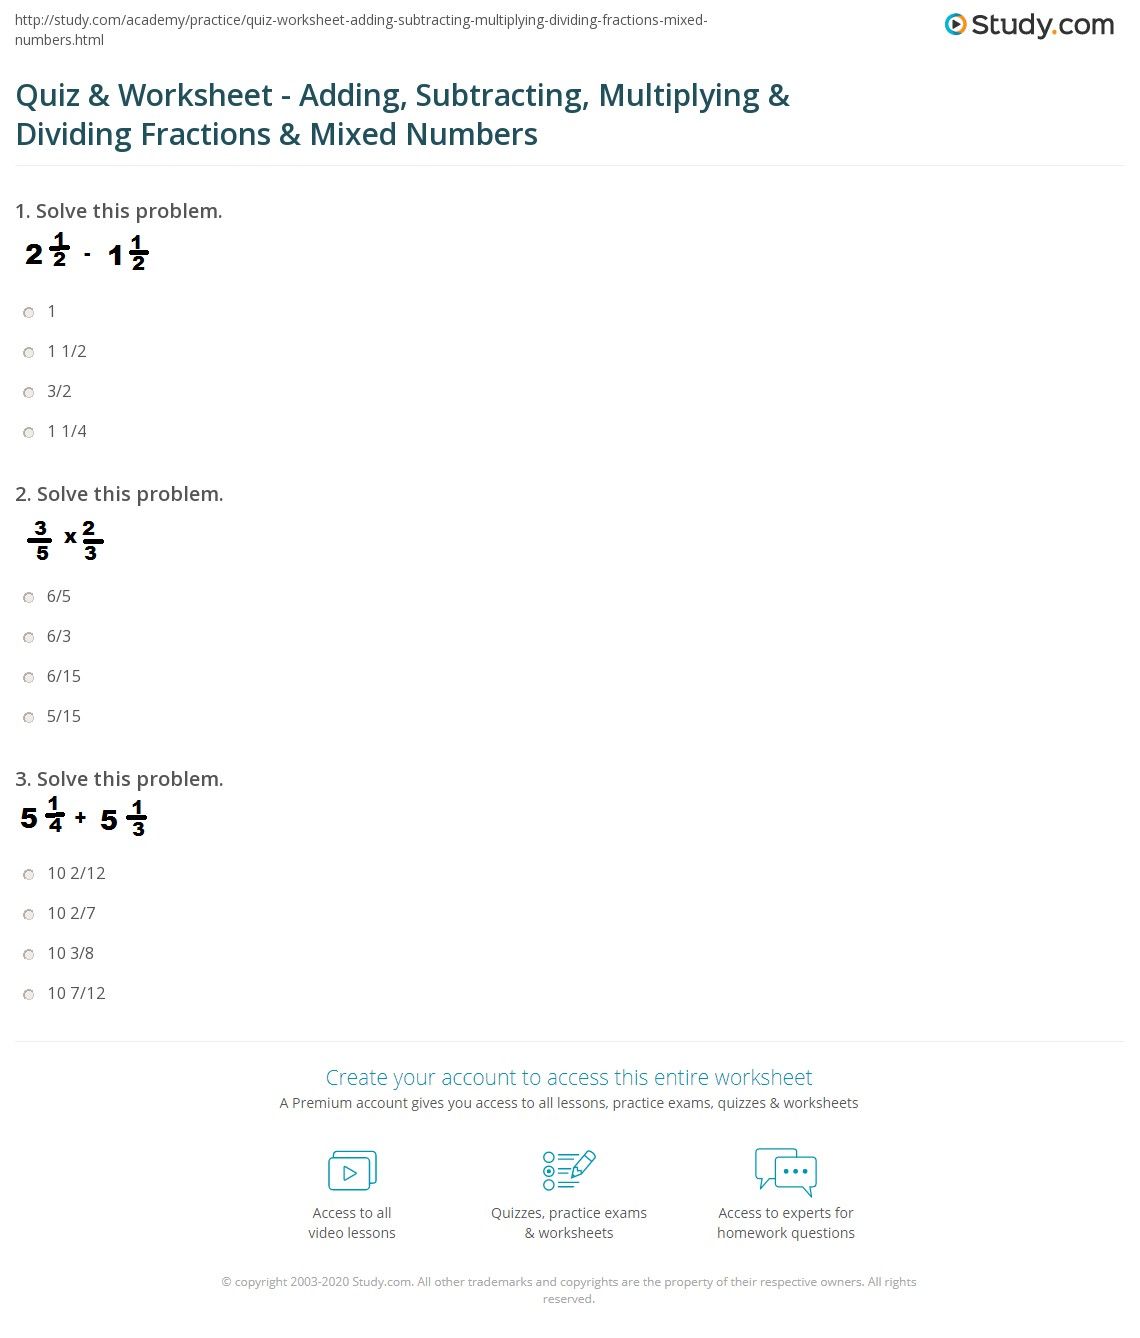 Worksheets Adding Subtracting Multiplying And Dividing Fractions Worksheet quiz worksheet adding subtracting multiplying dividing print add subtract multiply divide fractions mixed numbers worksheet